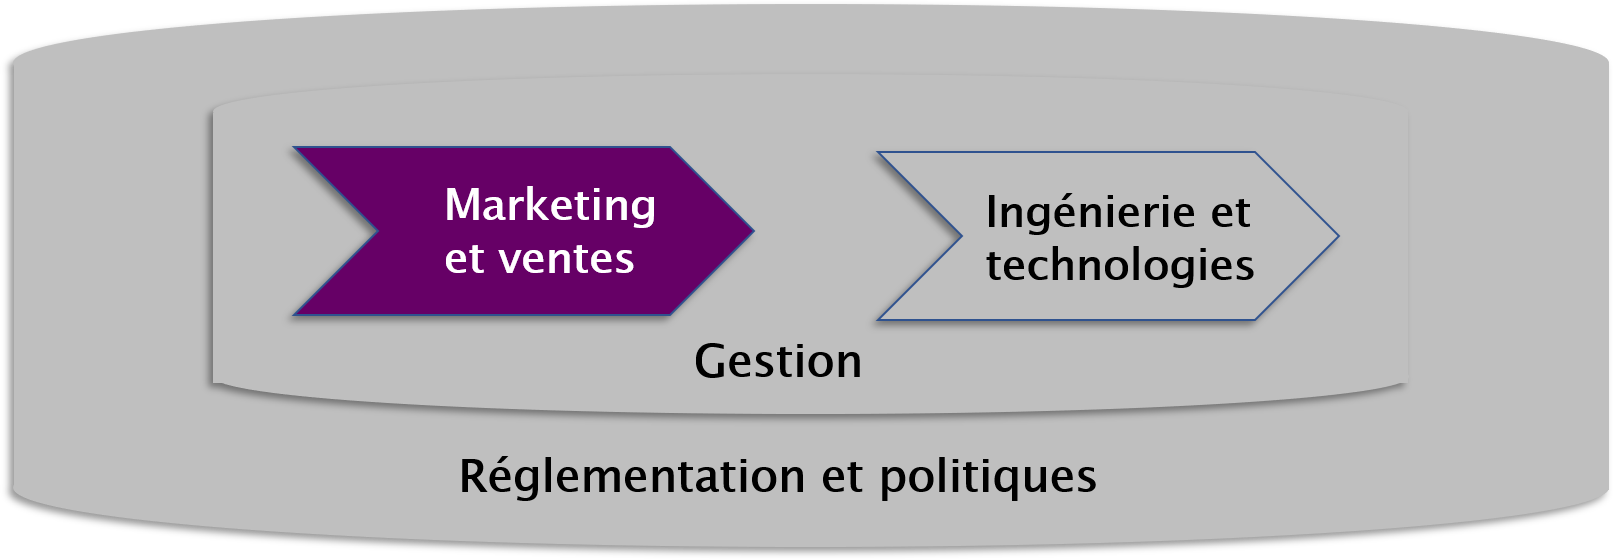 formation-marketing-telecom-tableau.png